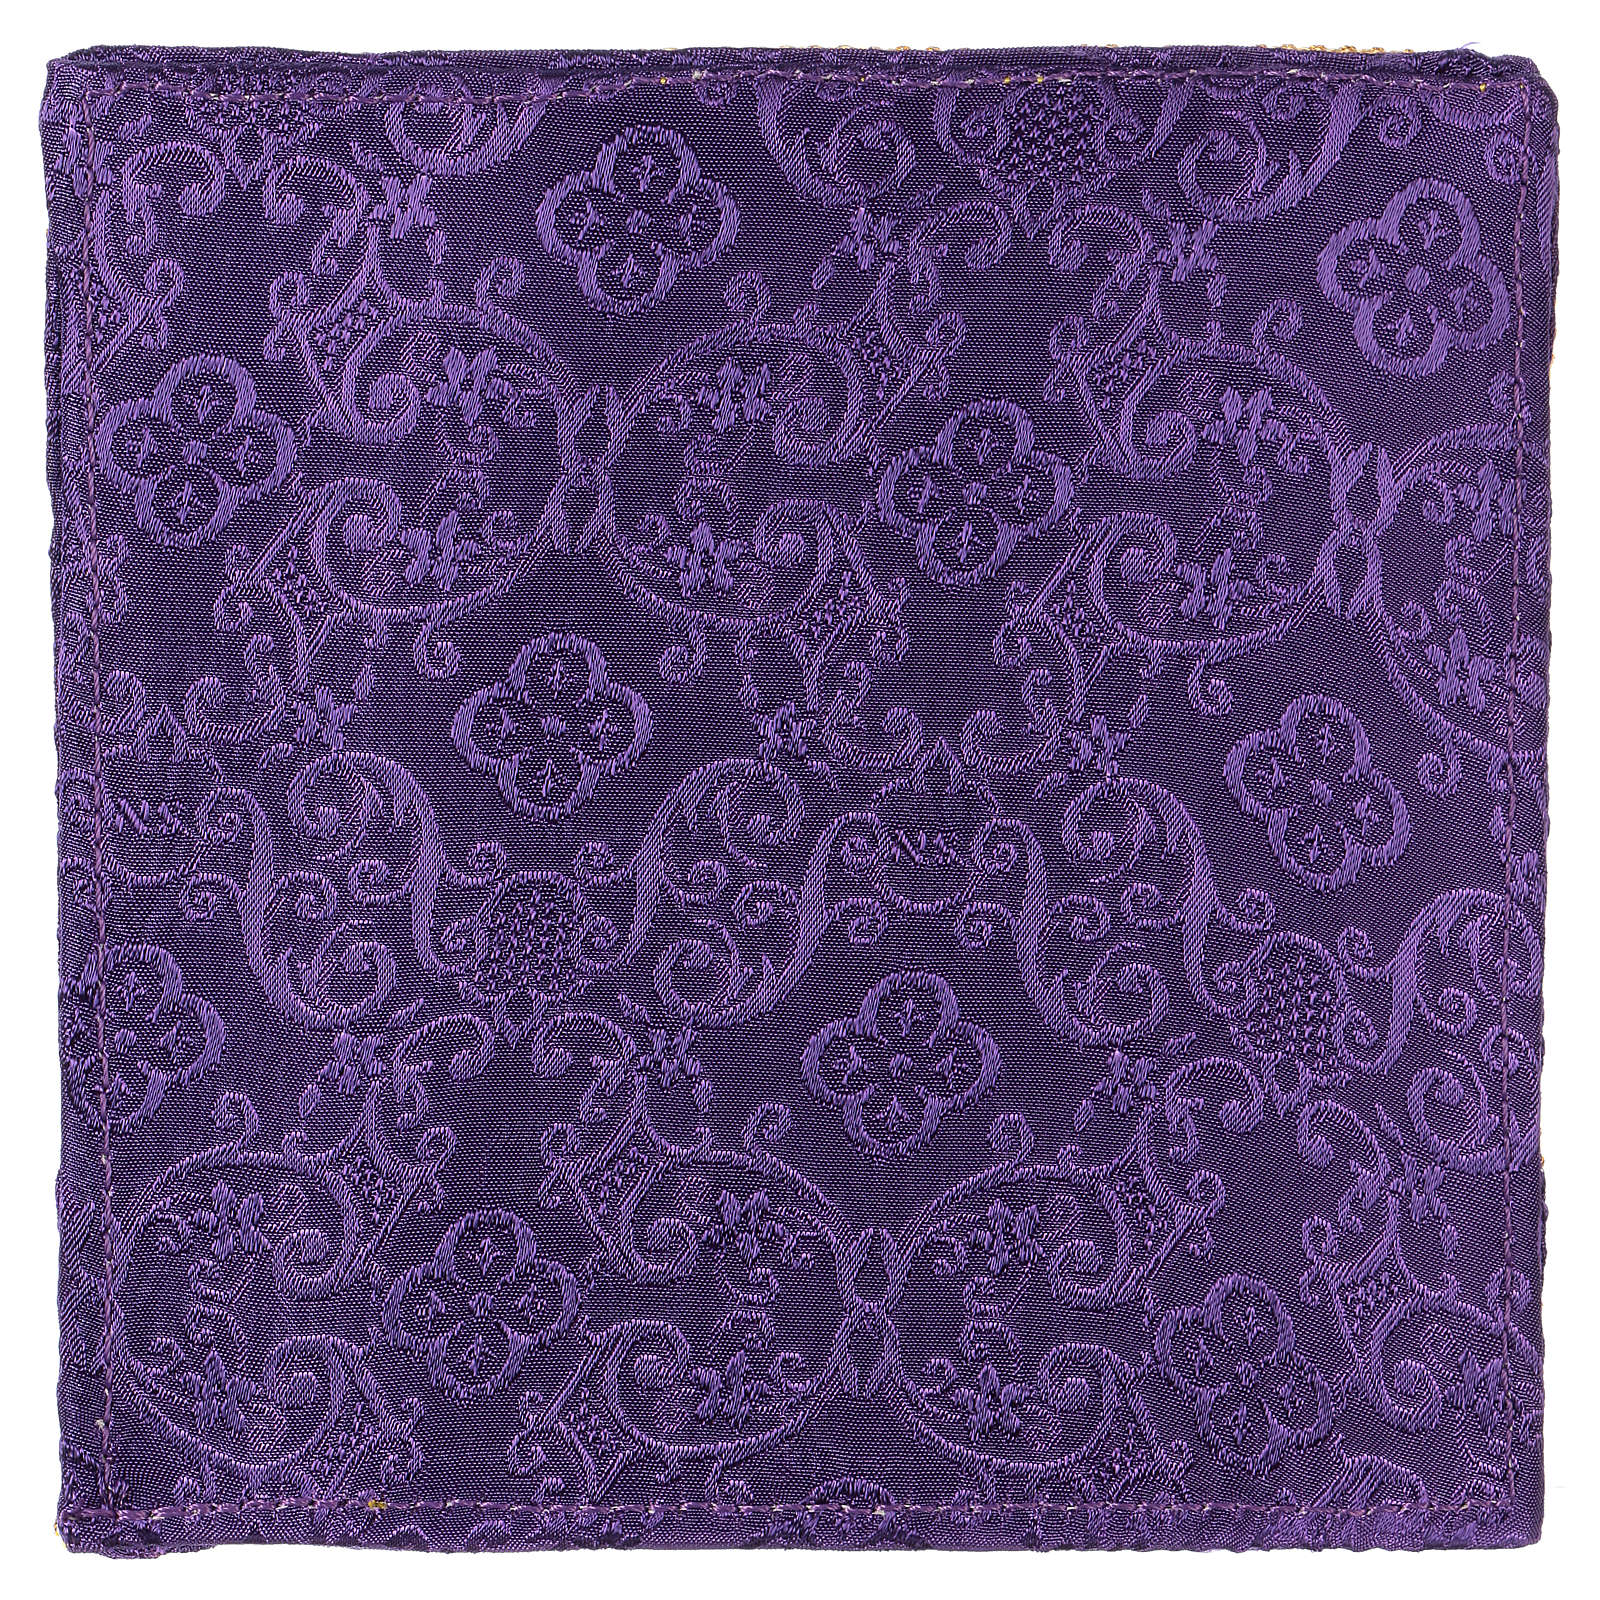 Chalice pall with cross embroidery, purple damask 4